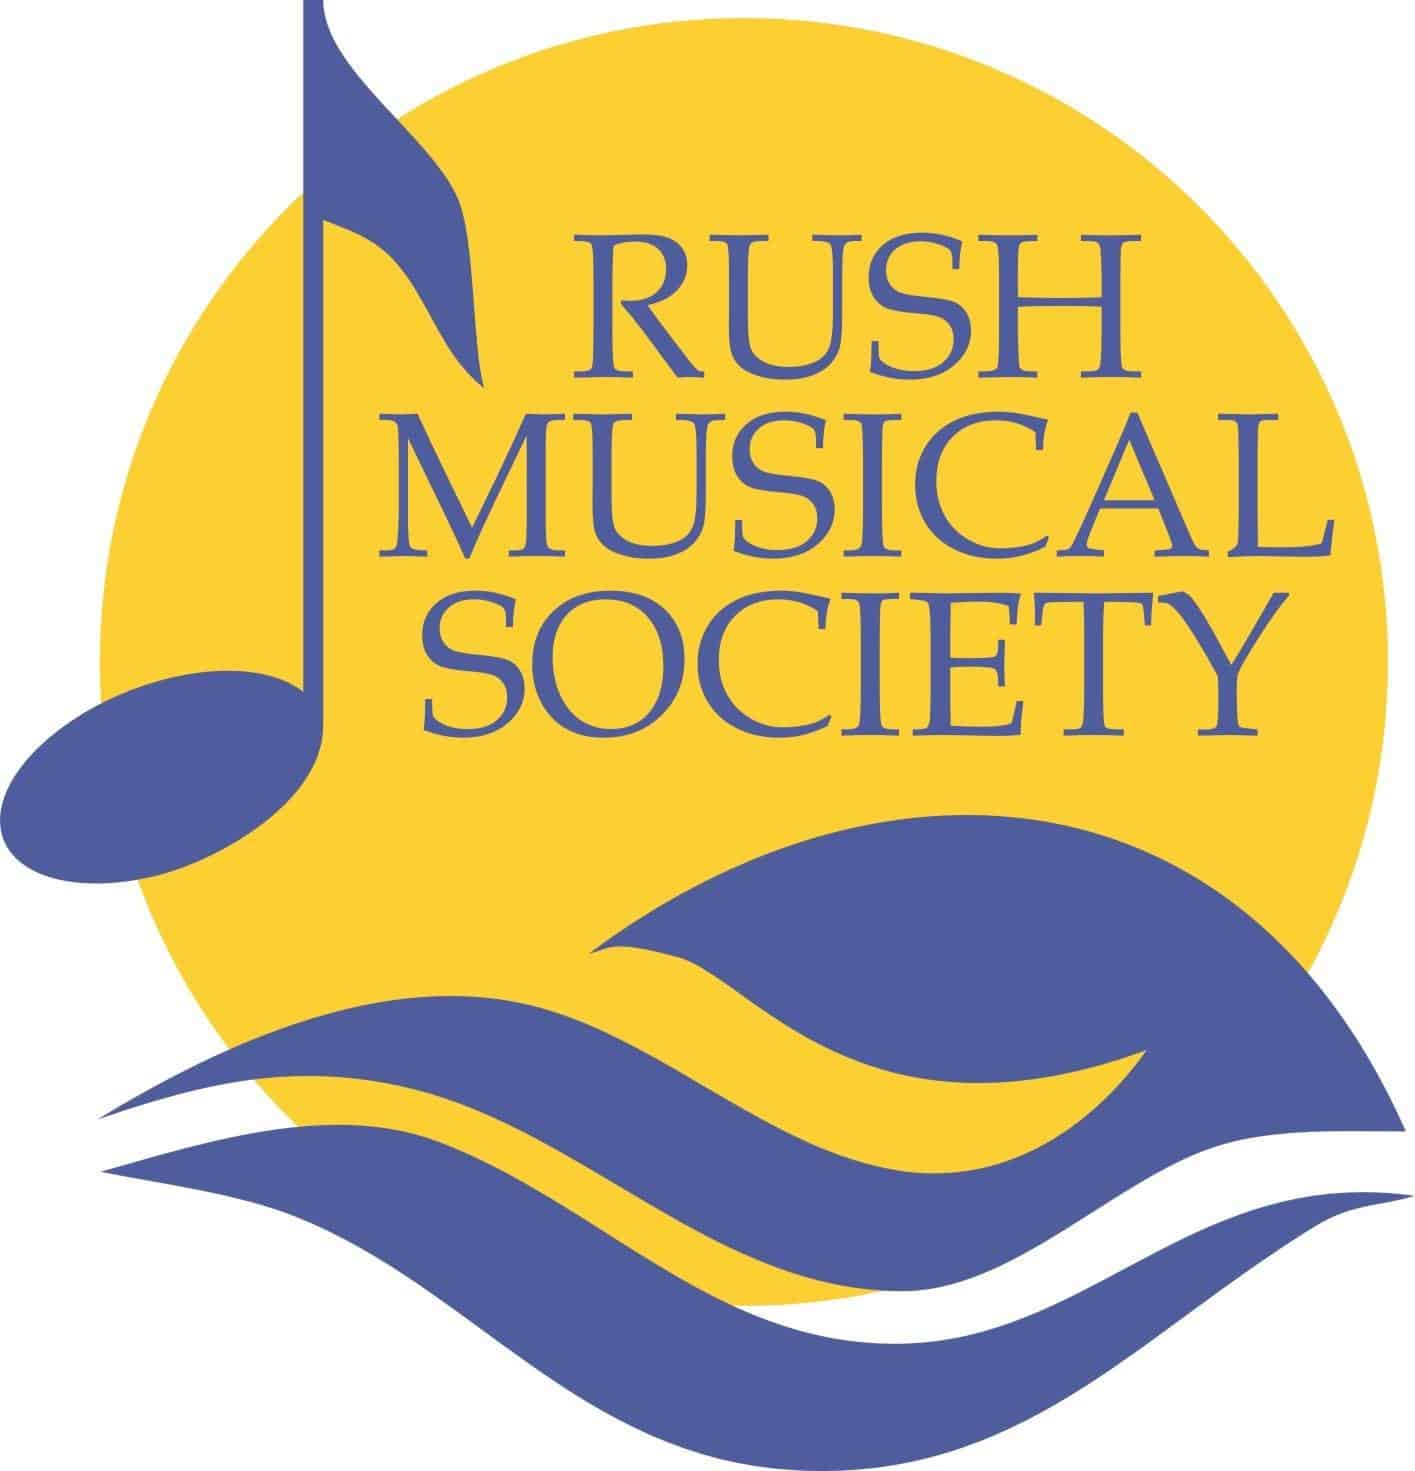 Rush Musical Society logo